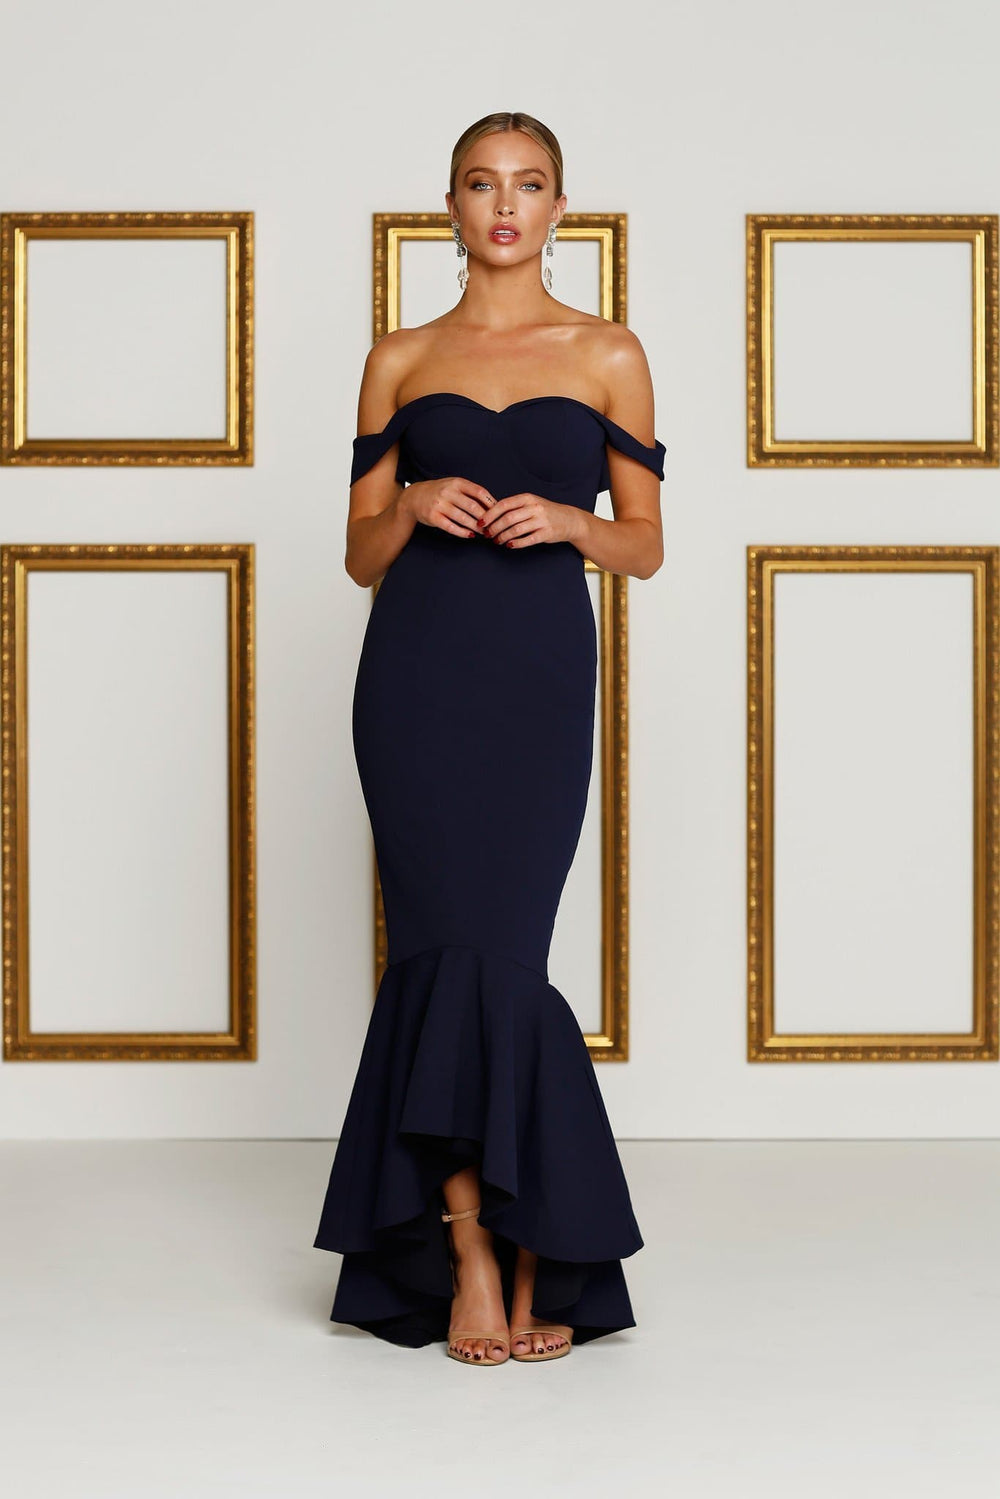 4bfc838ec08d Sapphire - Navy Cocktail Dress in Mermaid Style | Off-Shoulder Drapes